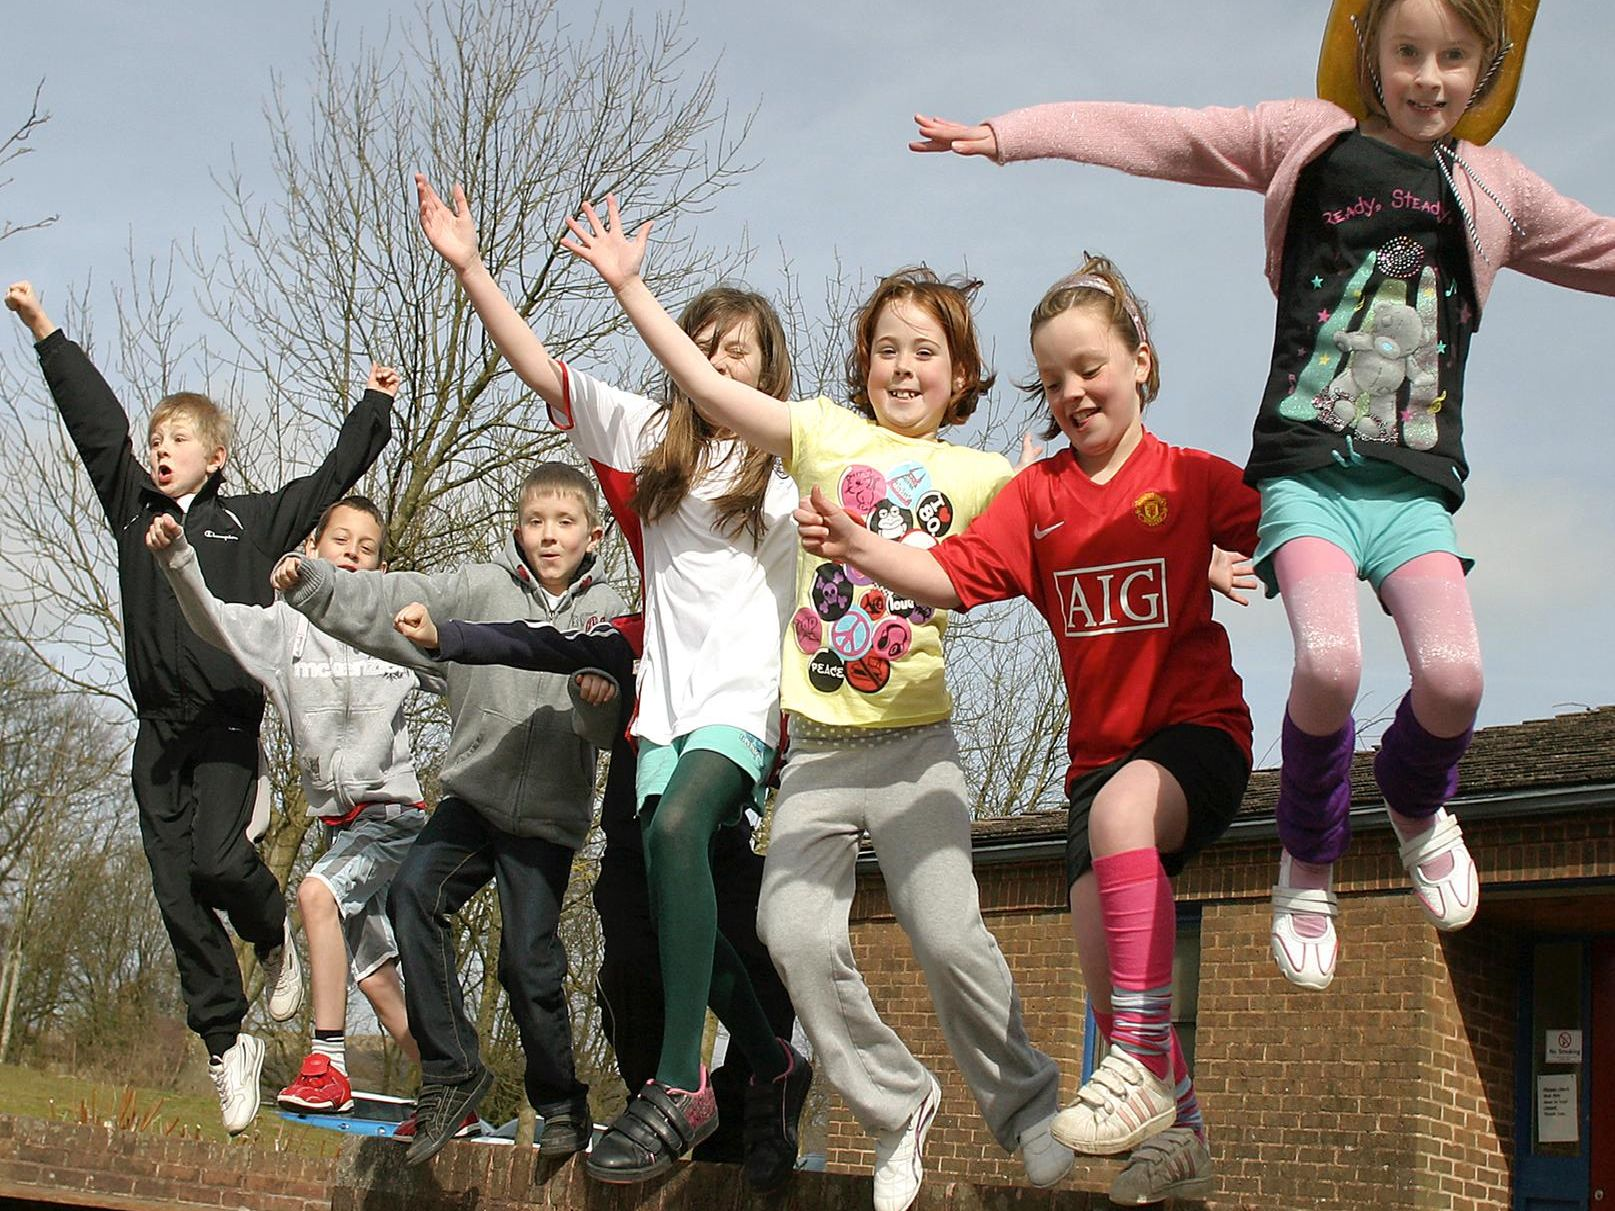 Year four pupils from Buxton Junior School take part in fundraising for Sports Relief in 2010.